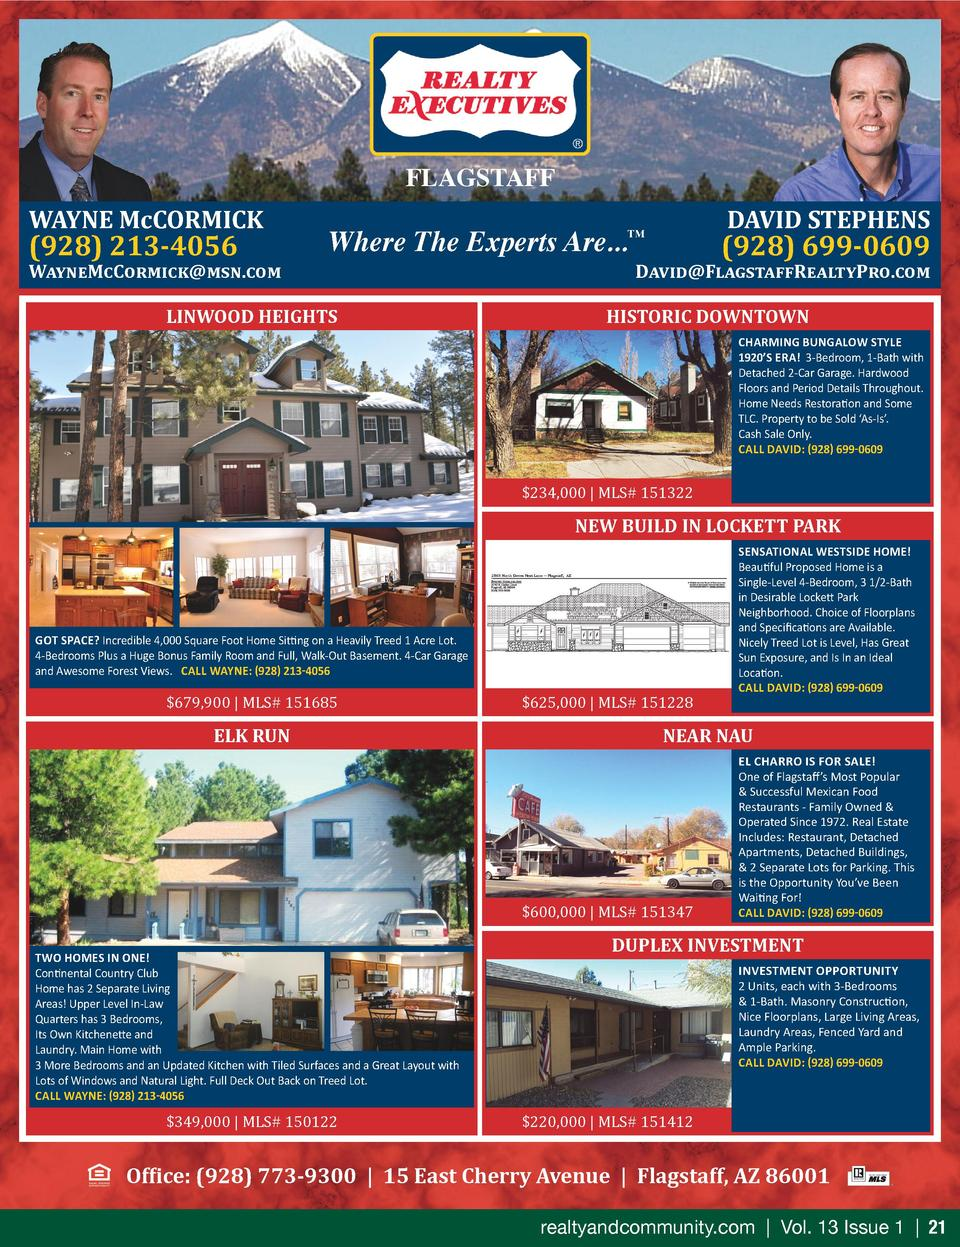 FLAGSTAFF WAYNE McCORMICK   928  213-4056  WayneMcCormick msn.com  Where The Experts Are...  LINWOOD HEIGHTS  DAVID STEPHE...